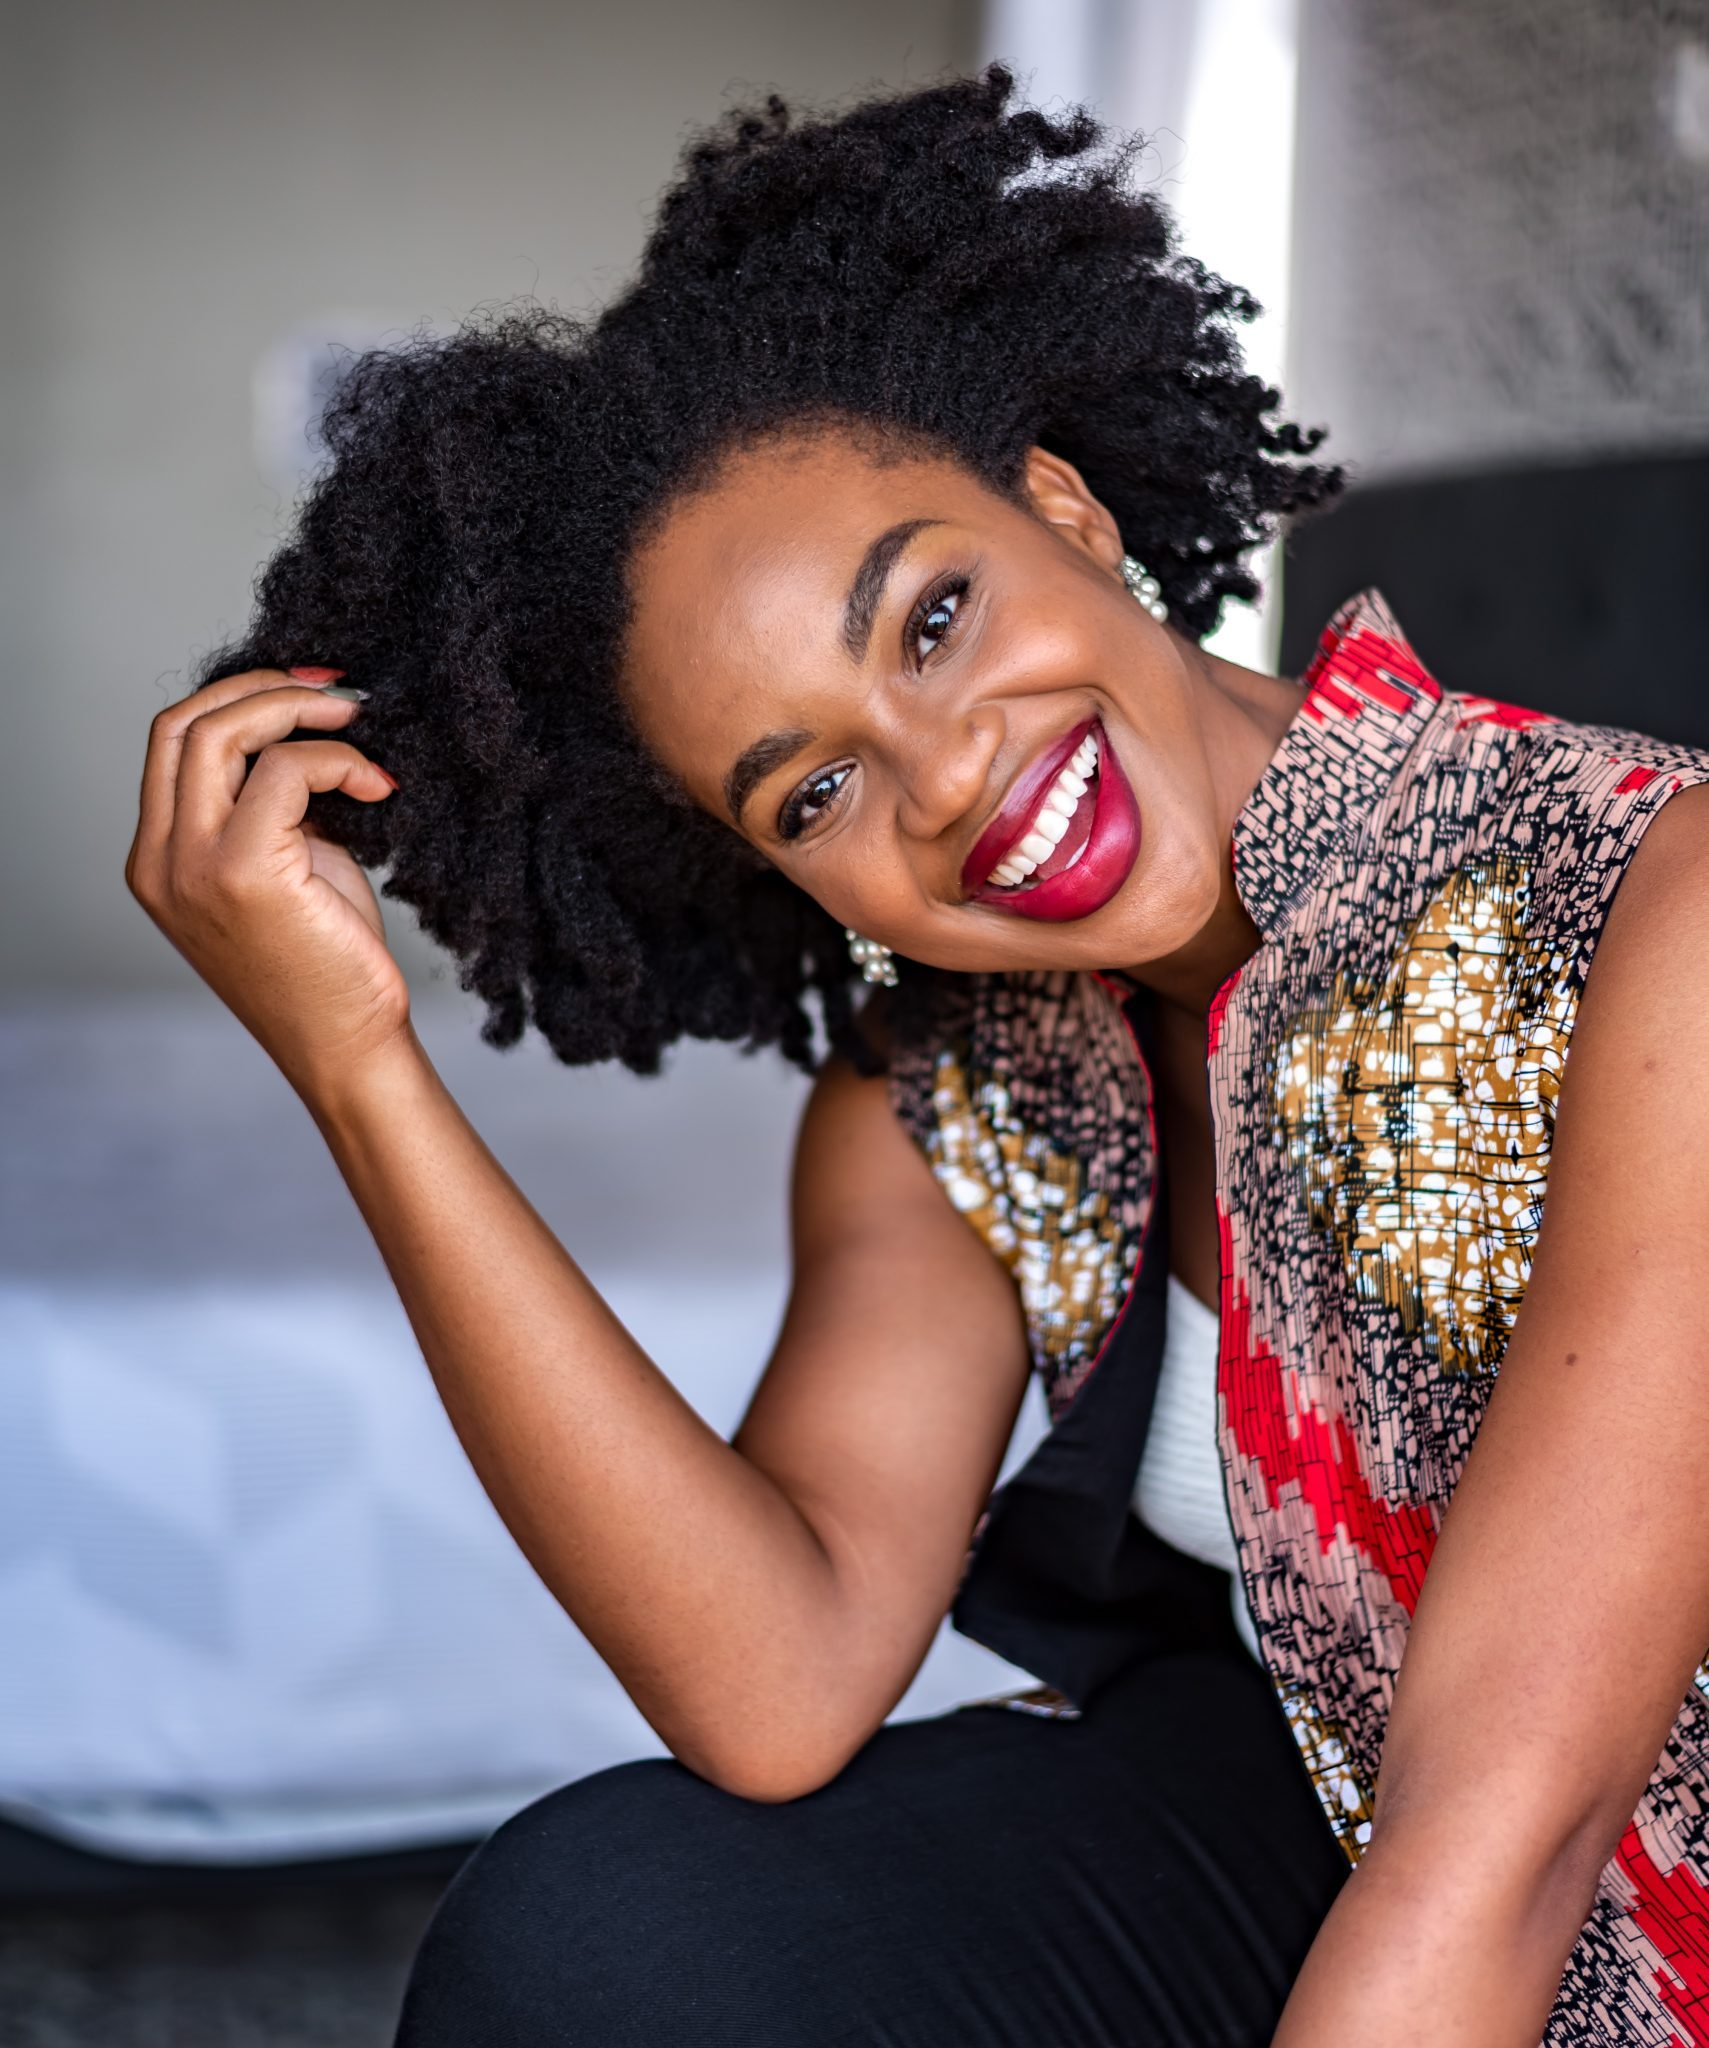 IJeoma.  kola.smiling with red lipstick and touching her afro